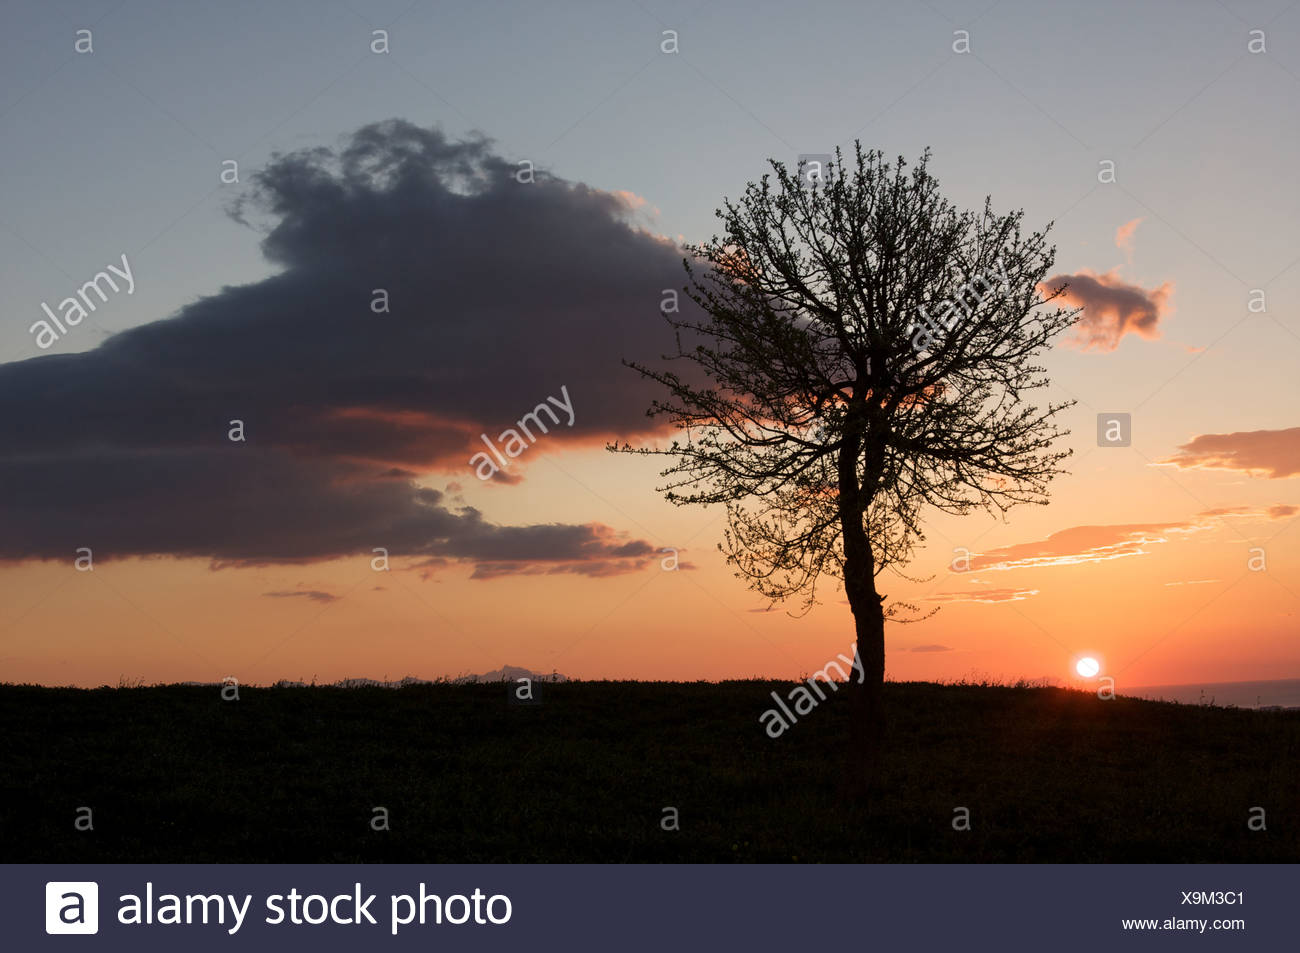 single tree silhouetted against sunset sky, Southern Italy - Stock Image